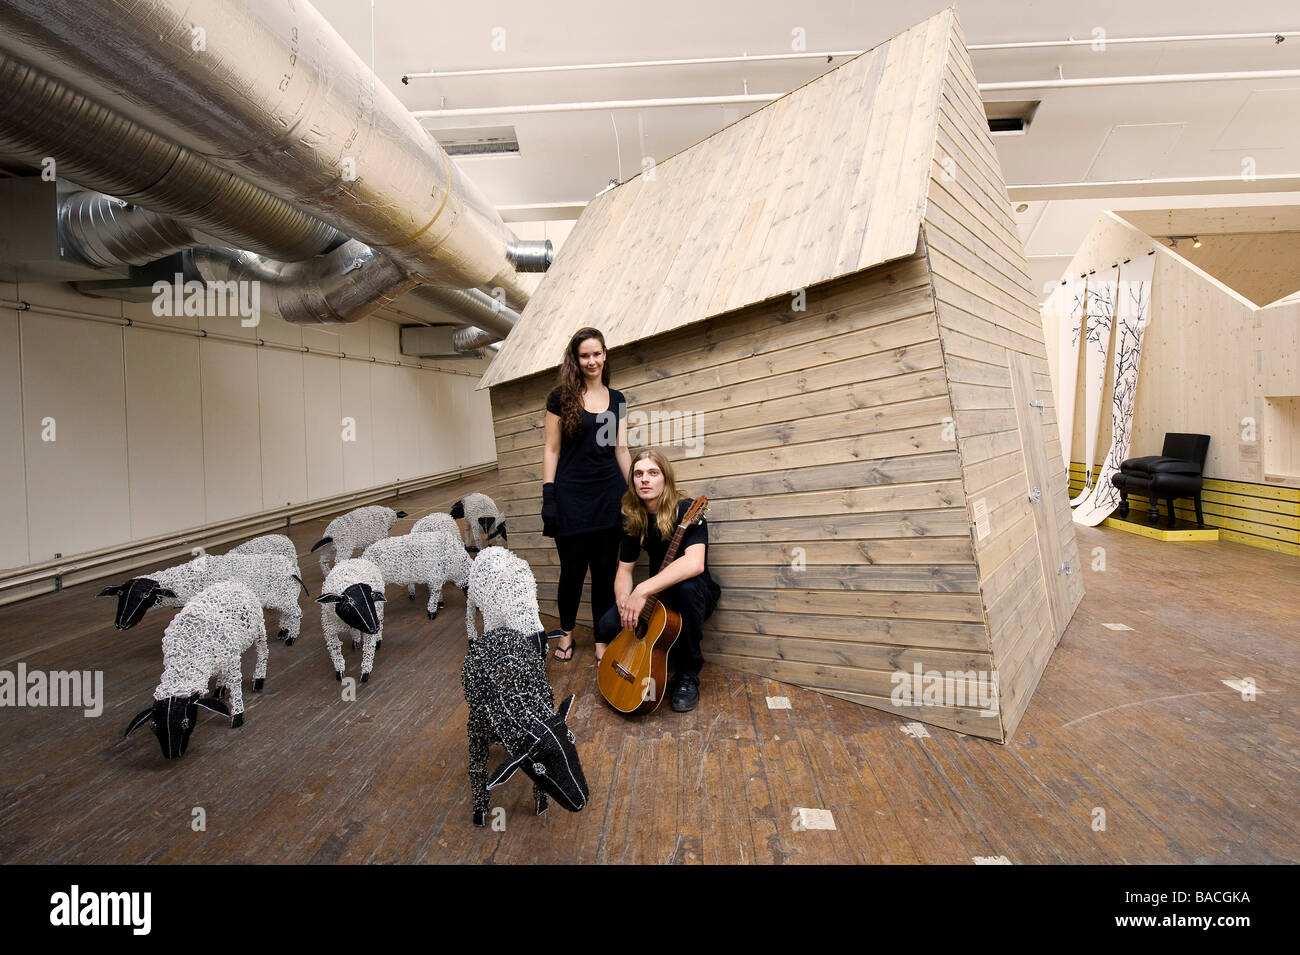 Norway, Rogaland County, Sandnes, A World of Folk (Stavanger 2008), Design Exhibition, the leaning hut by Laurens - Stock Image